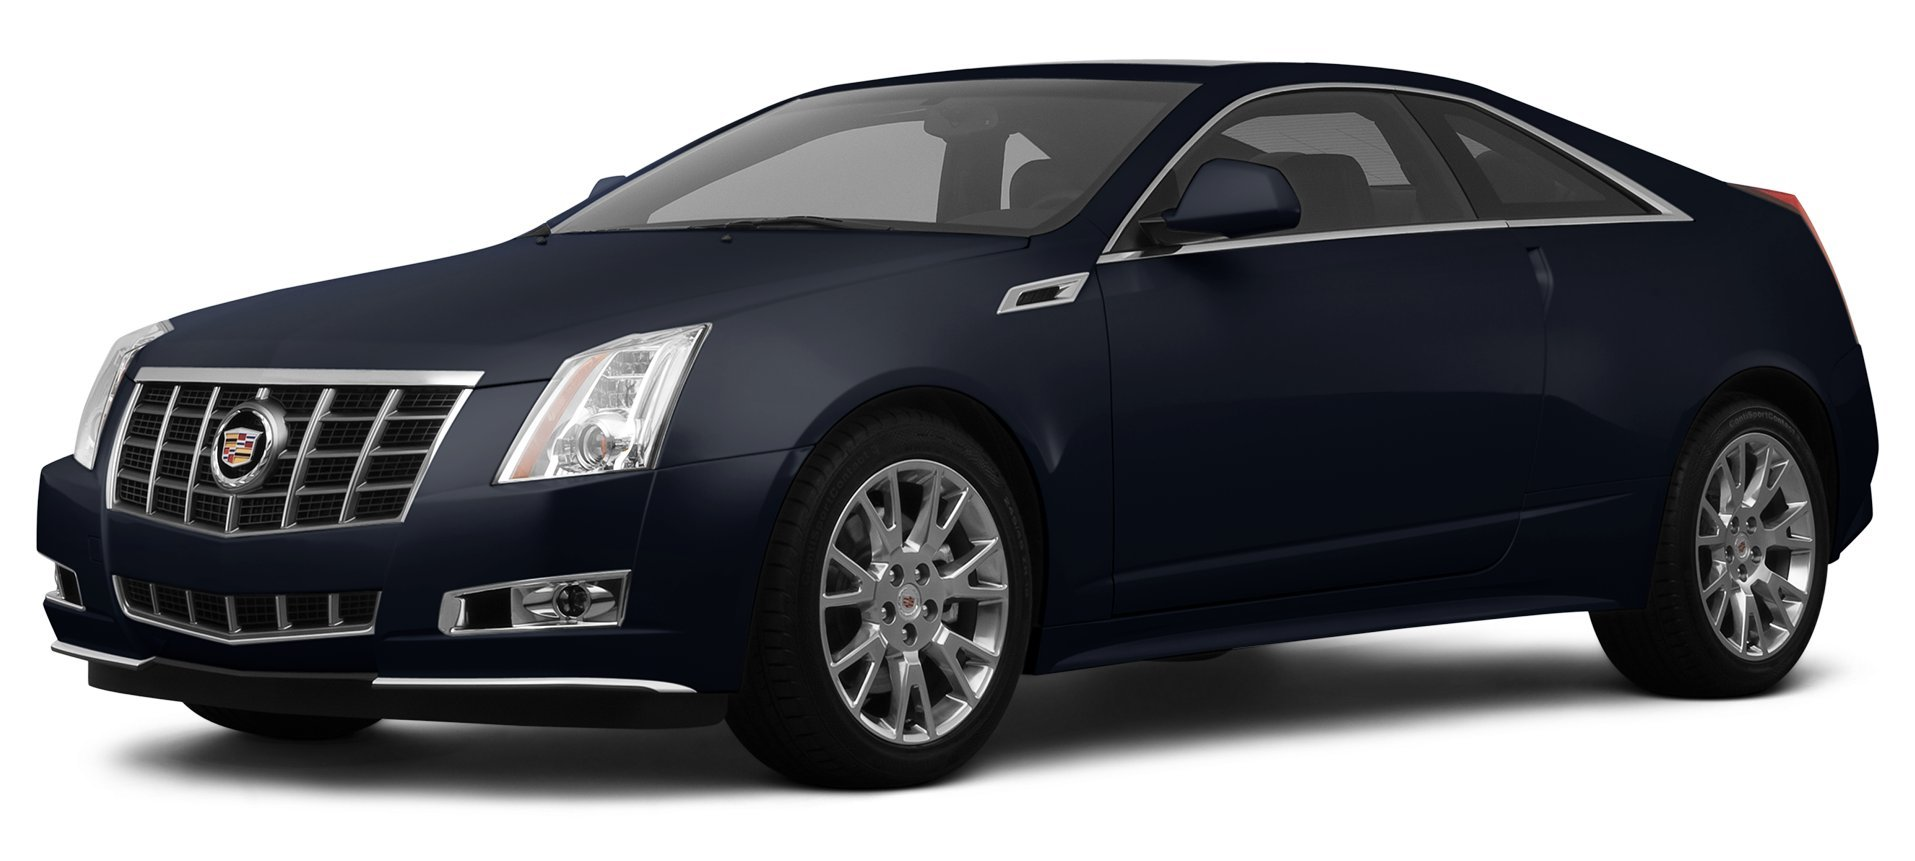 Amazon Com 2012 Cadillac Cts Reviews Images And Specs